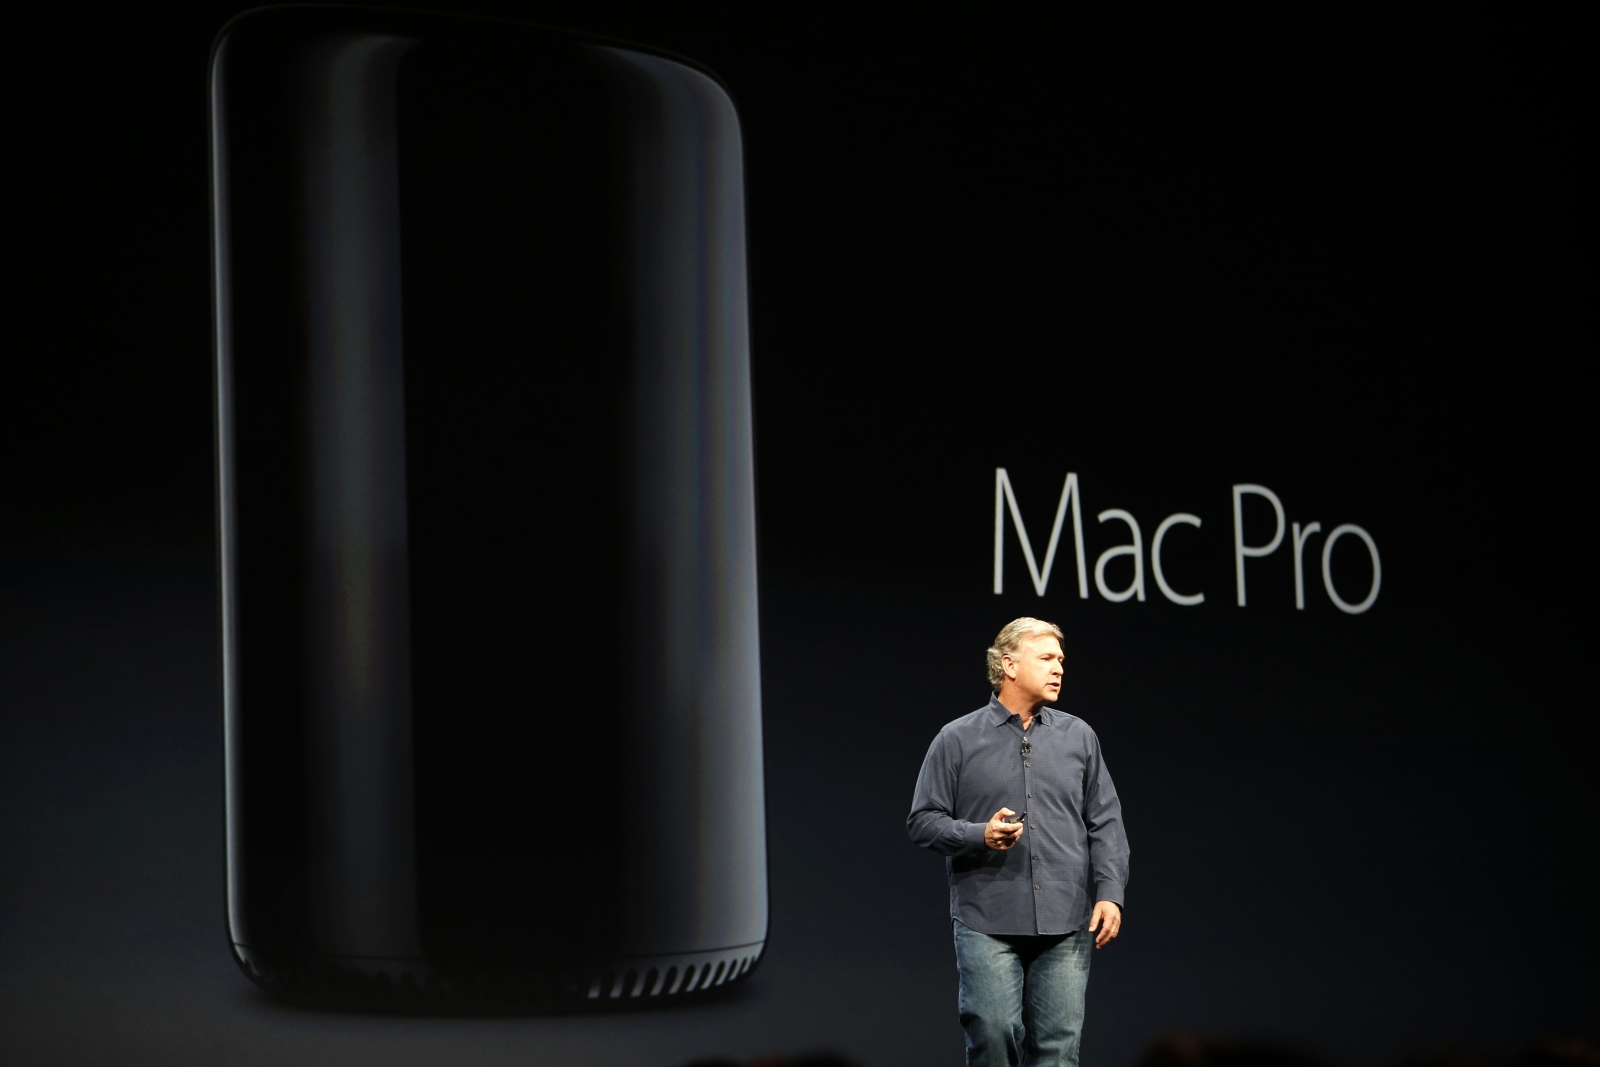 Phil Schiller introduces the Mac Pro